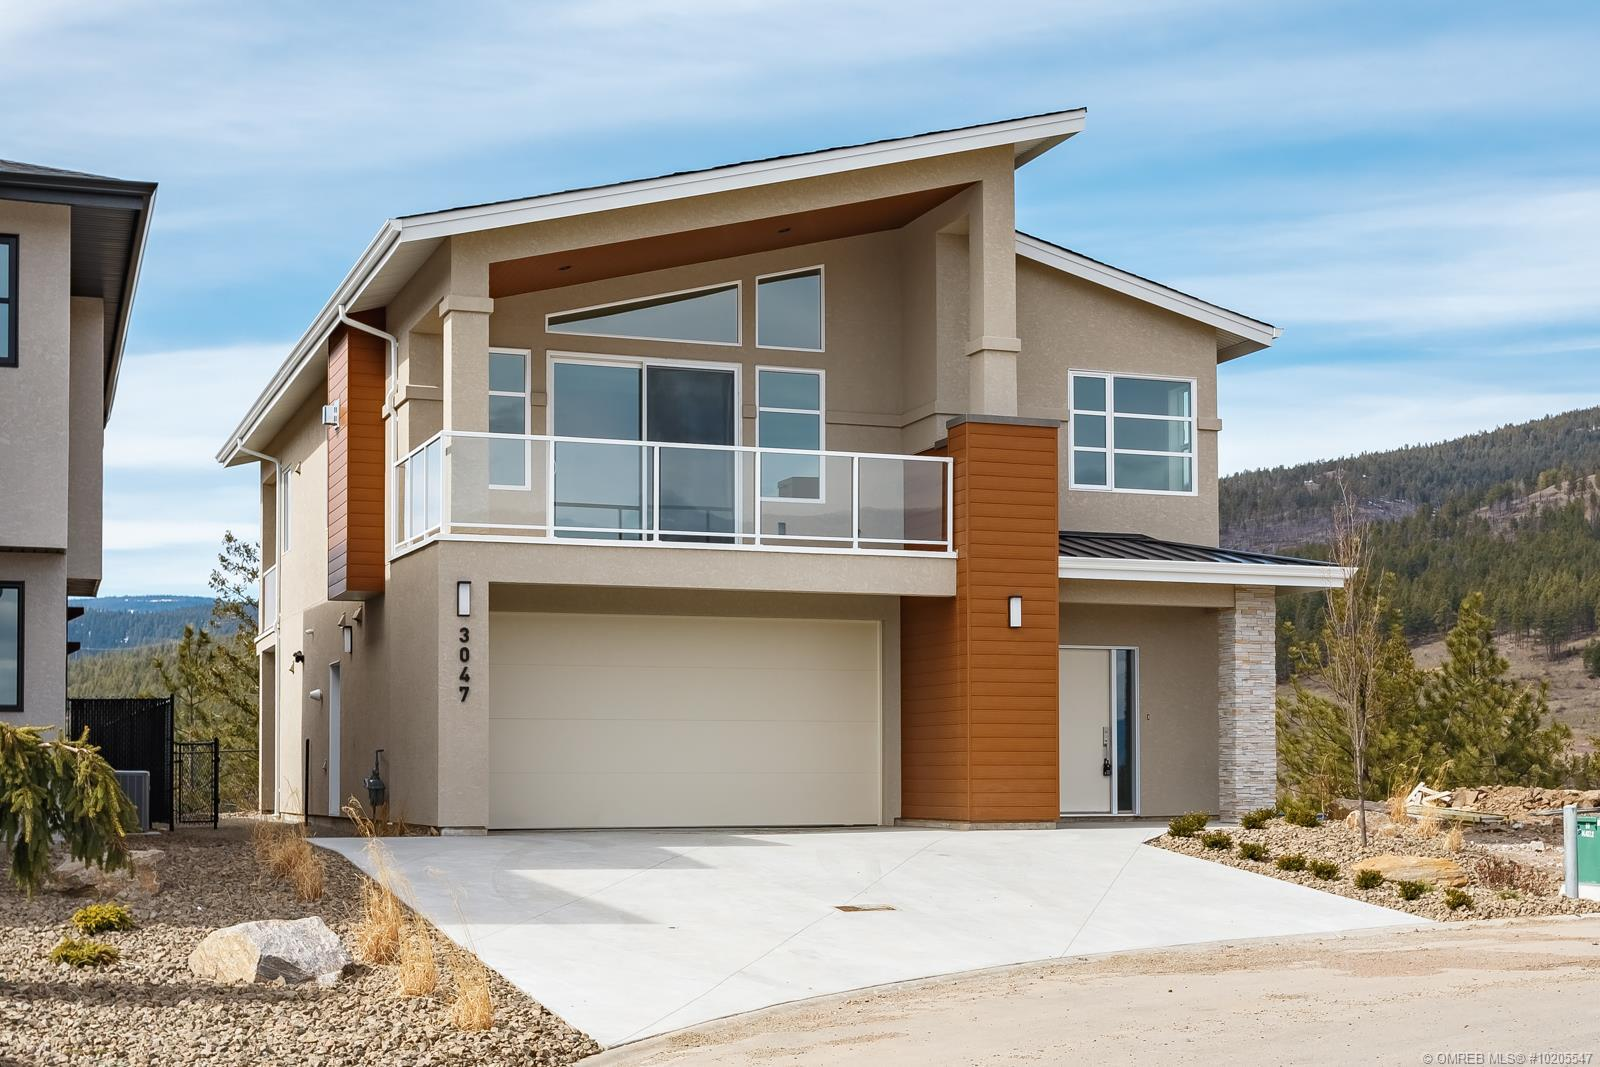 Removed: 3047 Shaleview Drive, West Kelowna, BC - Removed on 2020-06-22 23:18:39